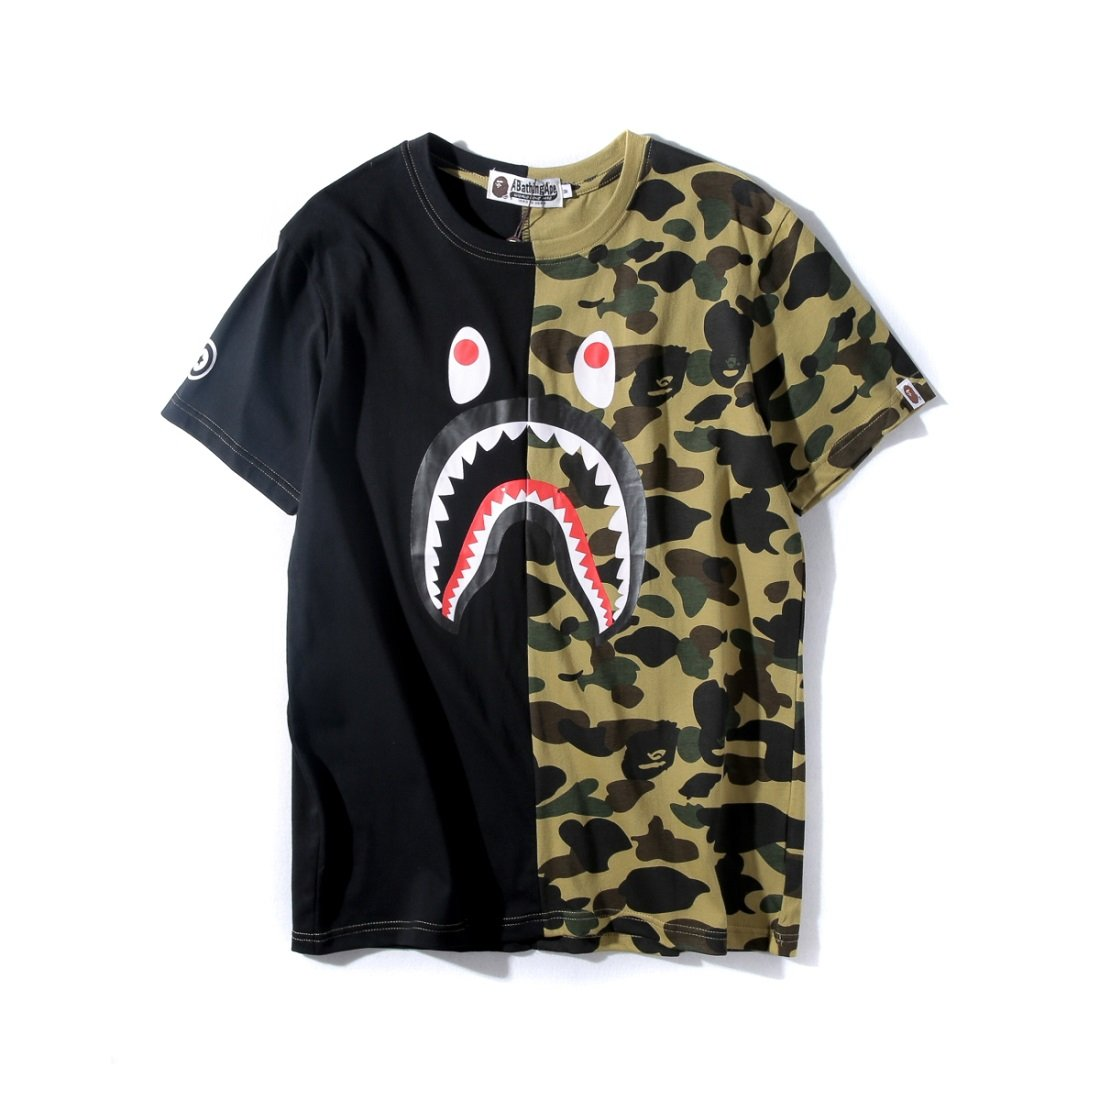 a3a0ba52067 Amazon.com: Big Mouth Shark Ape Bape Camo Casual T Shirt Tees Unisex with  Round Neck Short Sleeve: Clothing